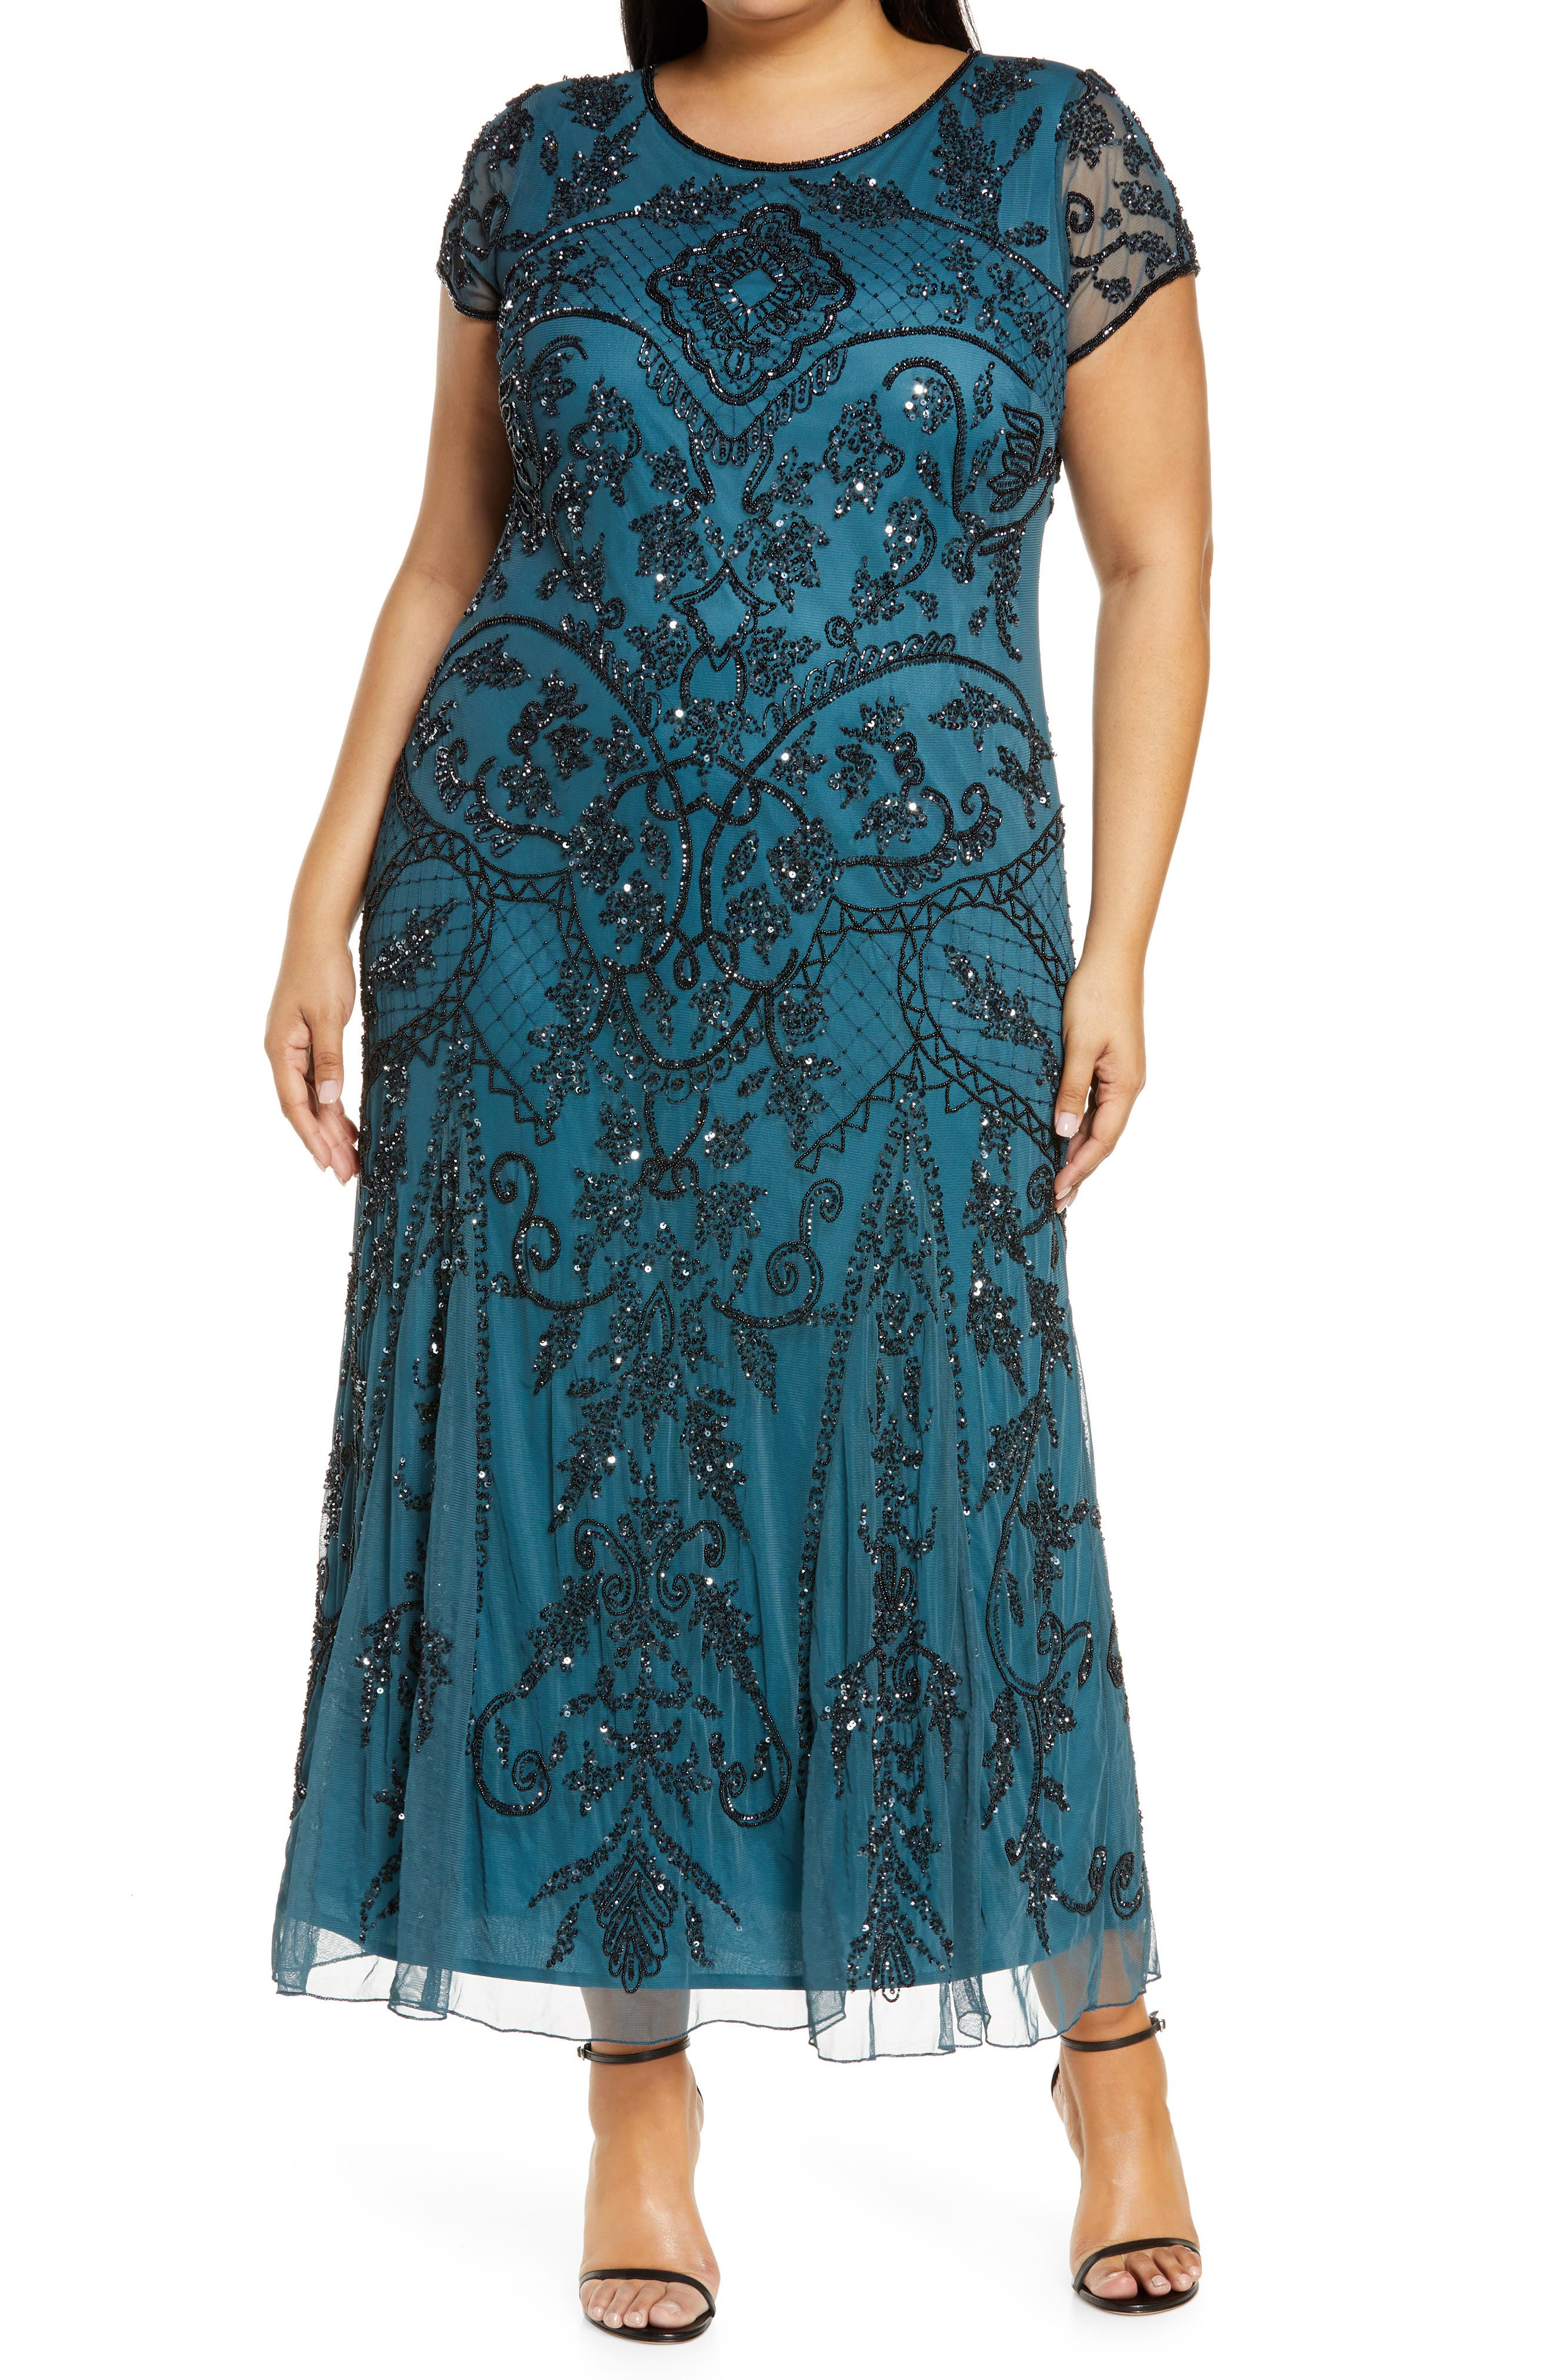 Great Gatsby Dress – Great Gatsby Dresses for Sale Plus Size Womens Pisarro Nights Beaded Short Sleeve Column Gown Size 24W - Green $258.00 AT vintagedancer.com